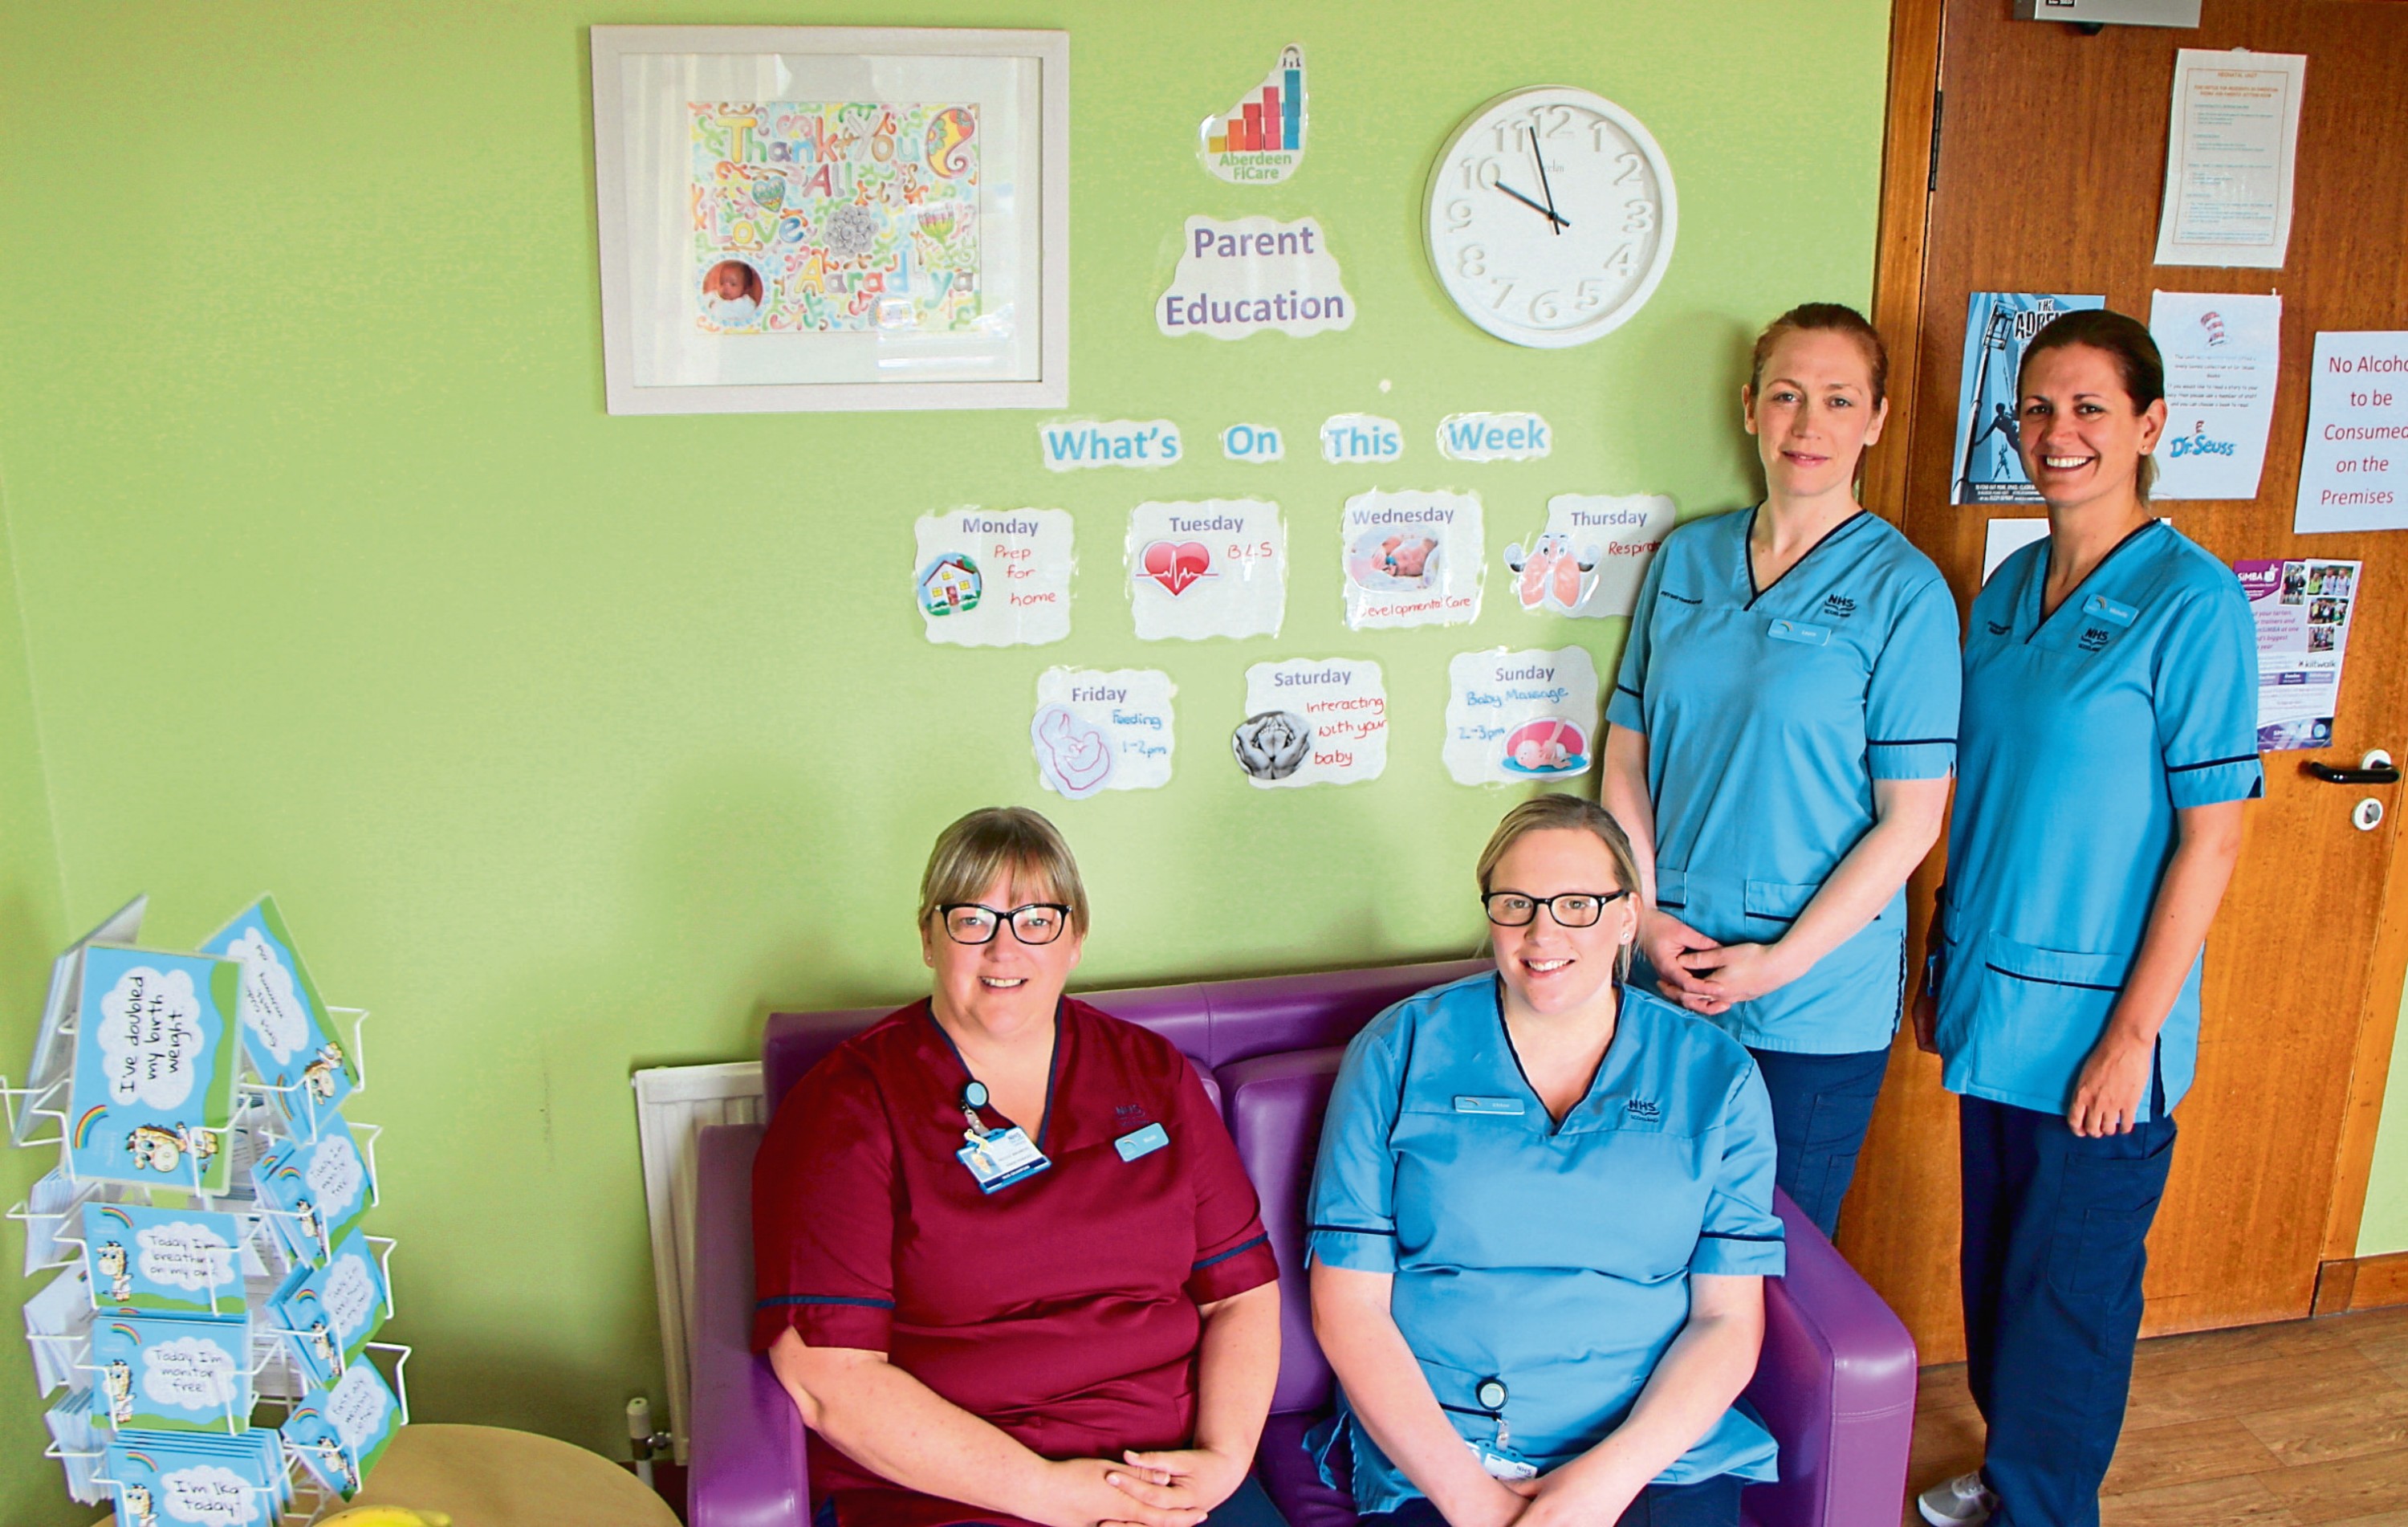 Nicole Bauwens, left, with neonatal team members Chloe Shevill, Laura Angus and Michelle McKay.